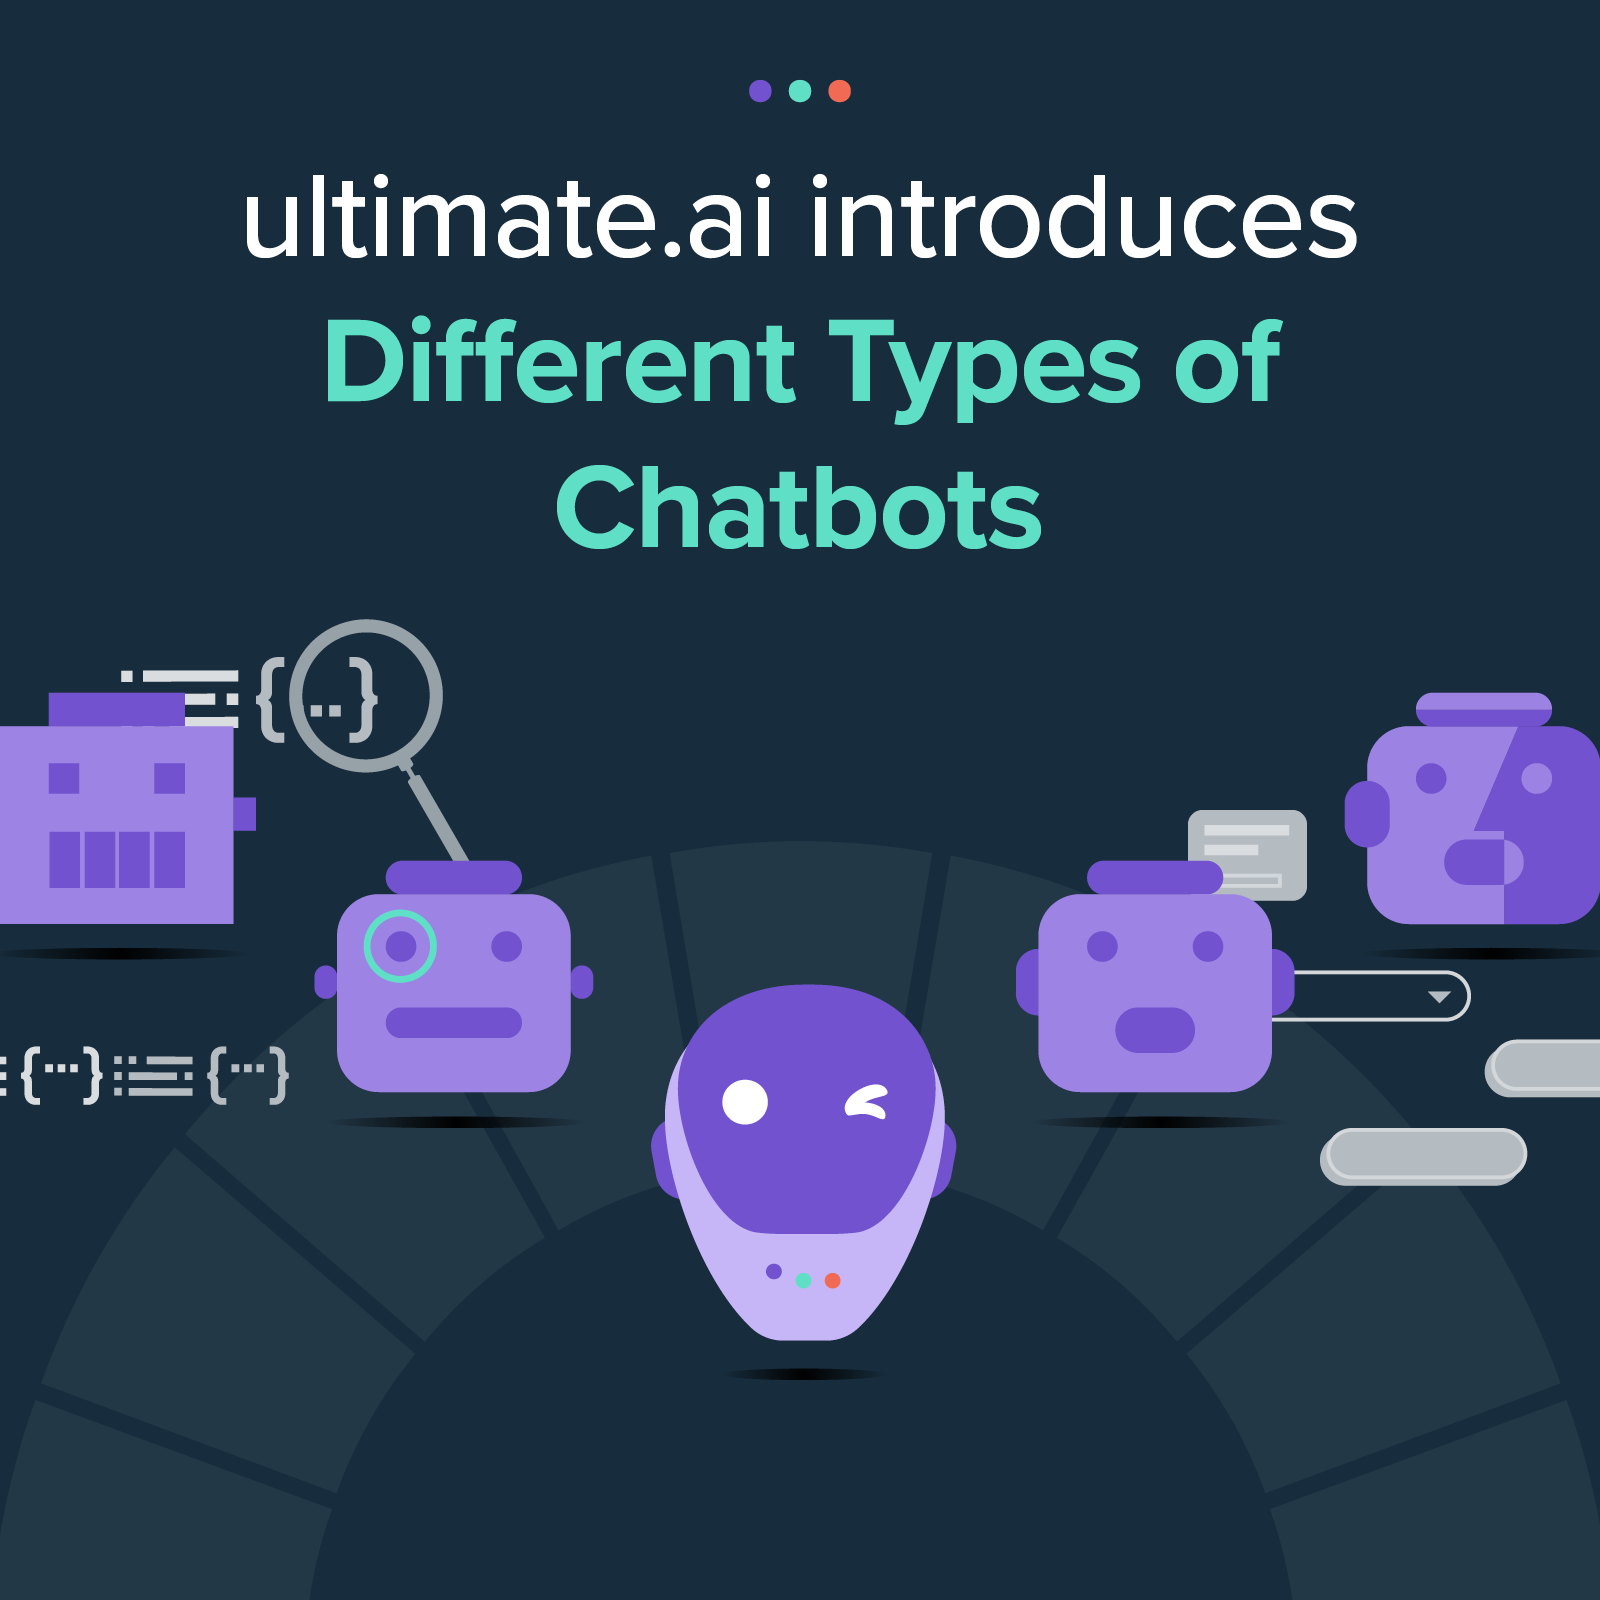 ultimate.ai introduces different types of chatbots